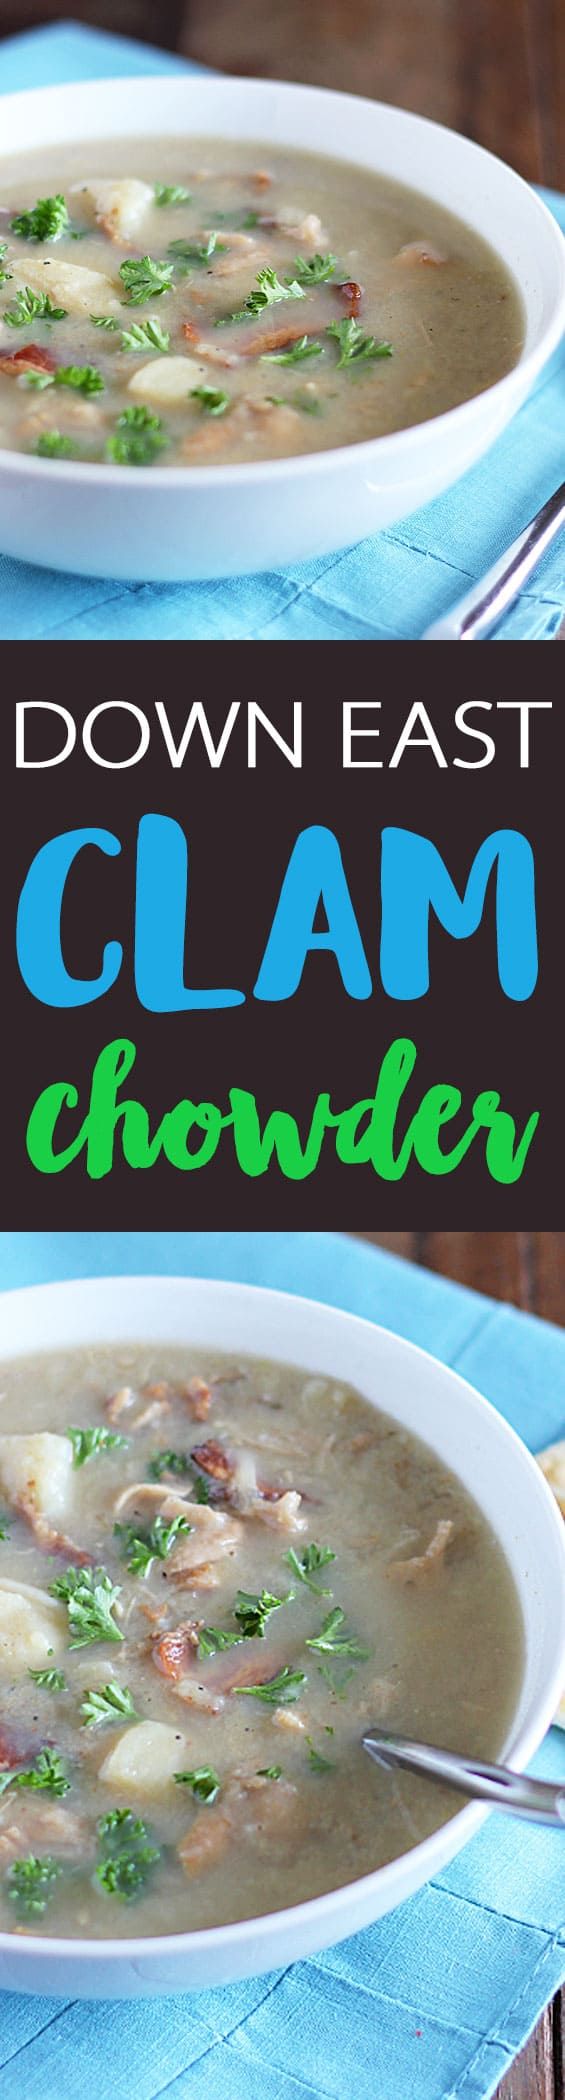 Down East Clam Chowder - A classic clam chowder recipe with bacon, potatoes and onions.